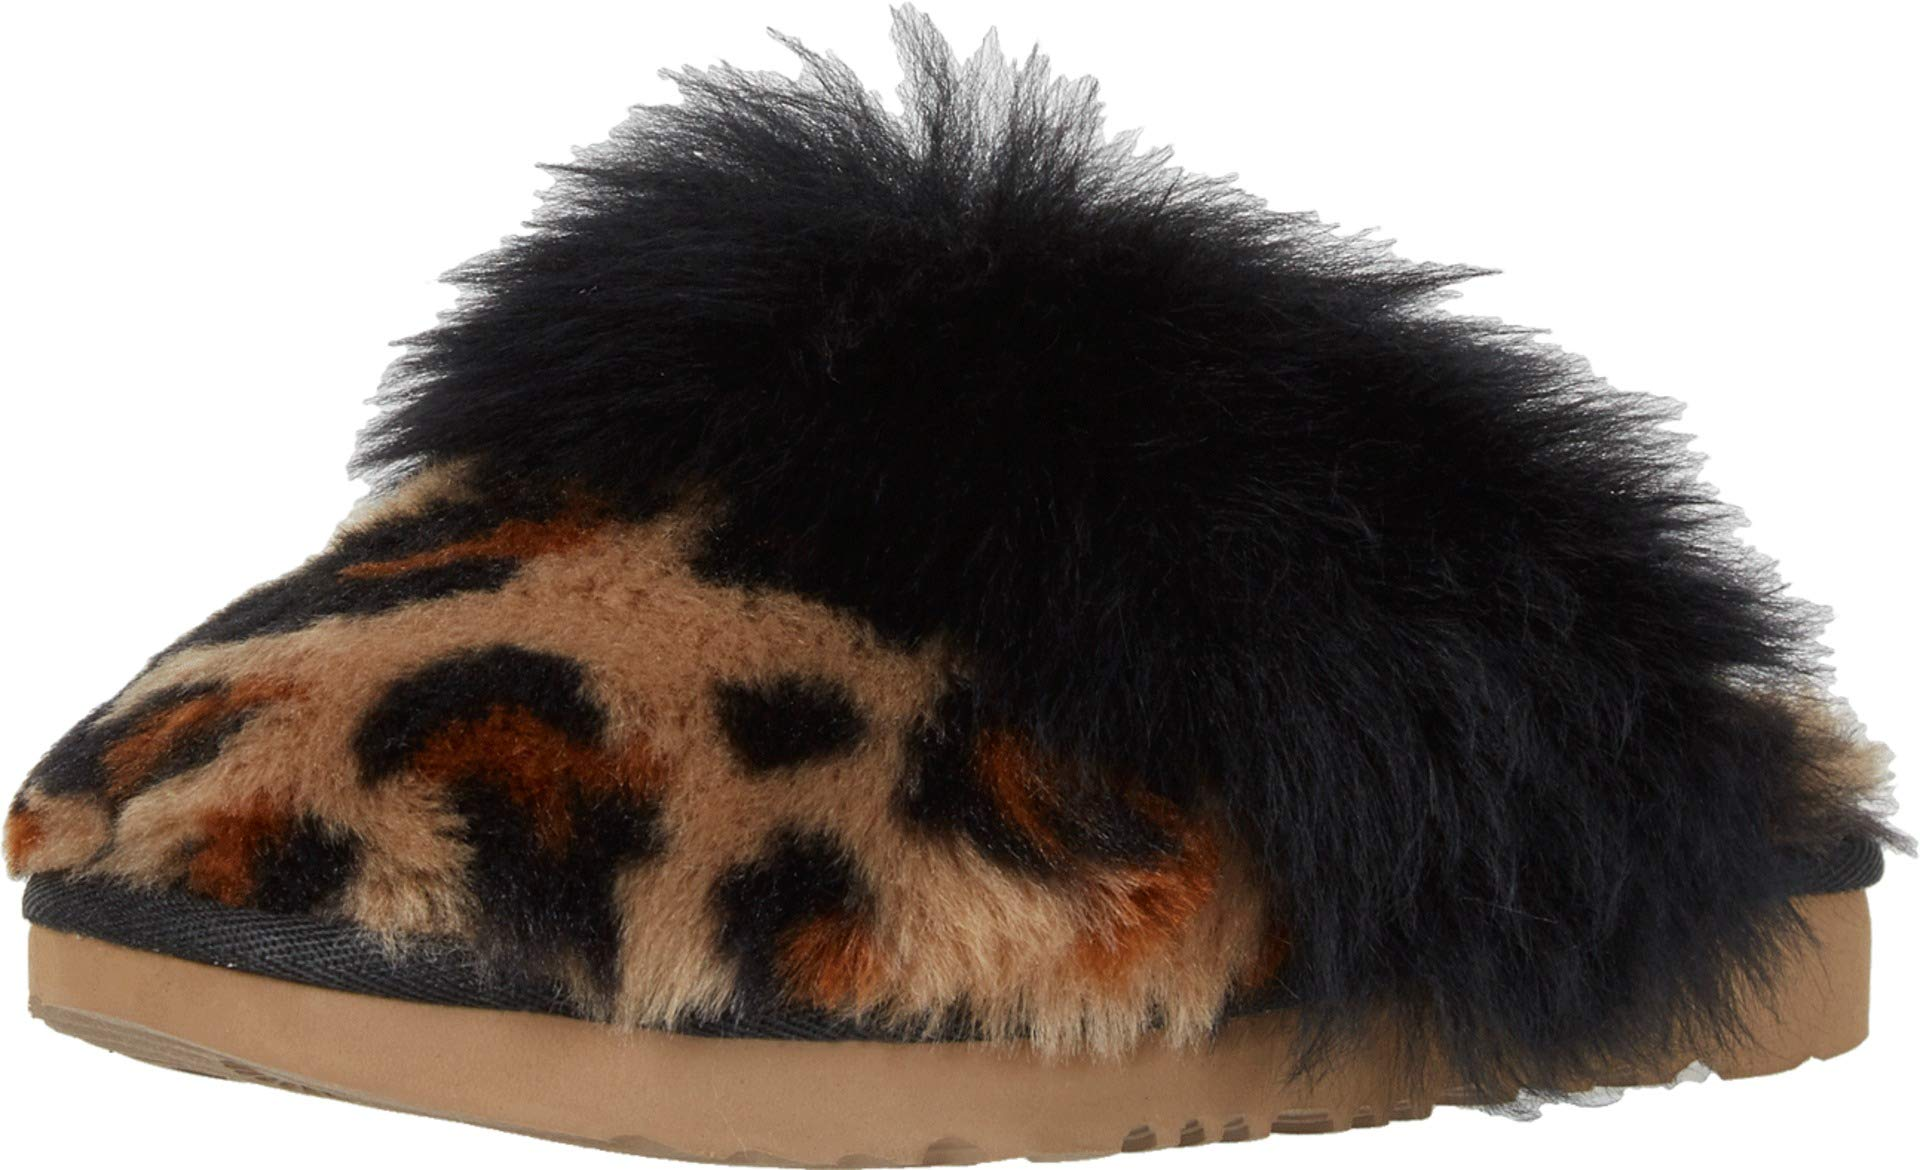 UGG Baby Cozy II Leopard Slipper, Amphora, 10 M US Toddler by UGG